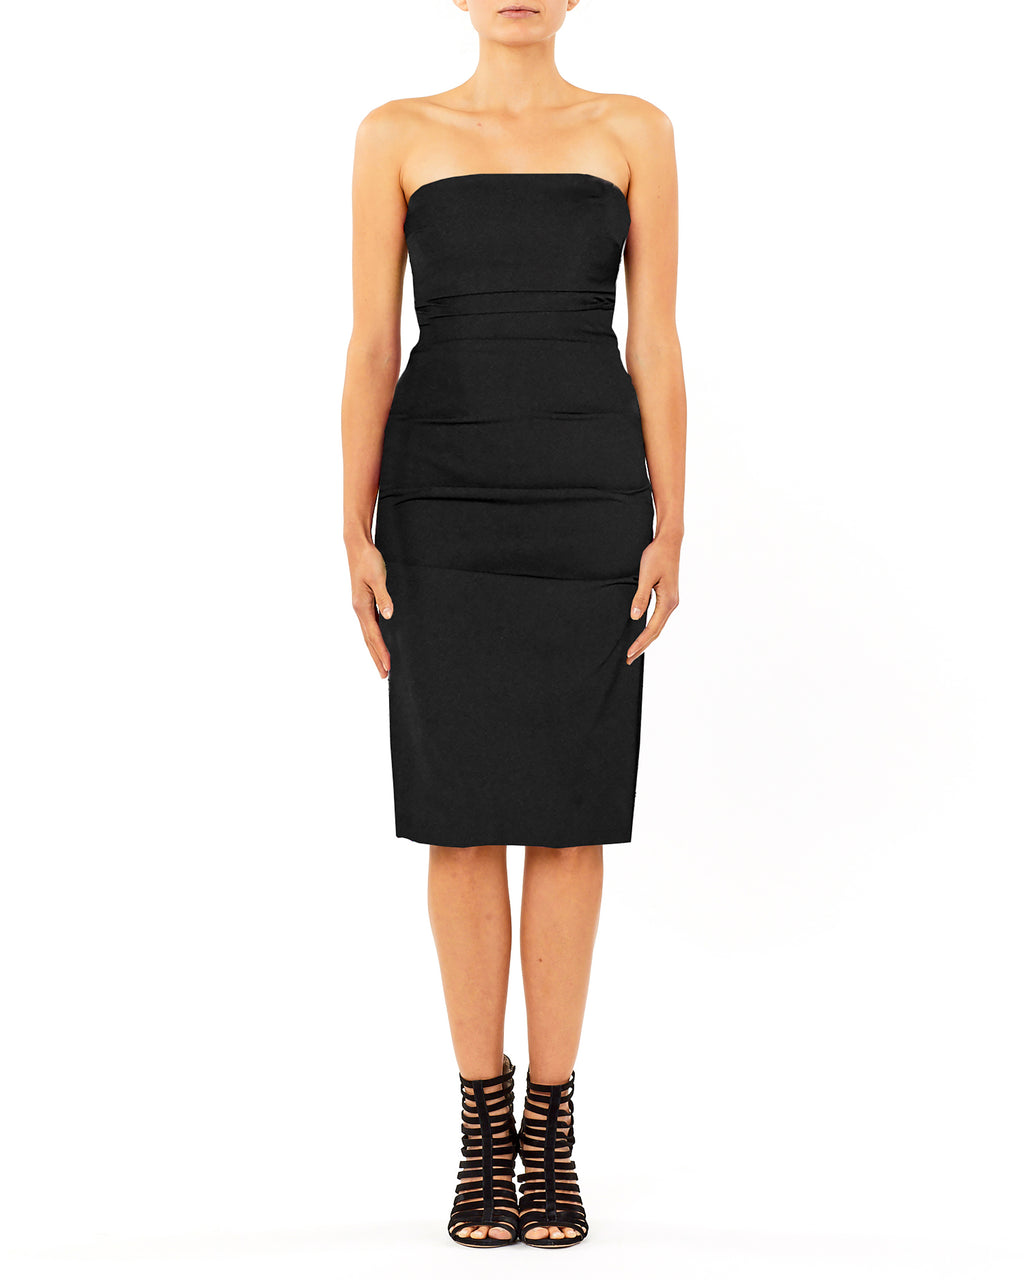 BH10444 - TECHY CREPE TUCK STRAPLESS DRESS - samples - dresses - How classic. This strapless dress is the epitome of the perfect black dress, elegantly framing your body while leaving you with the opportunity to accessorize. Exposed back zipper for closure. Final Sale